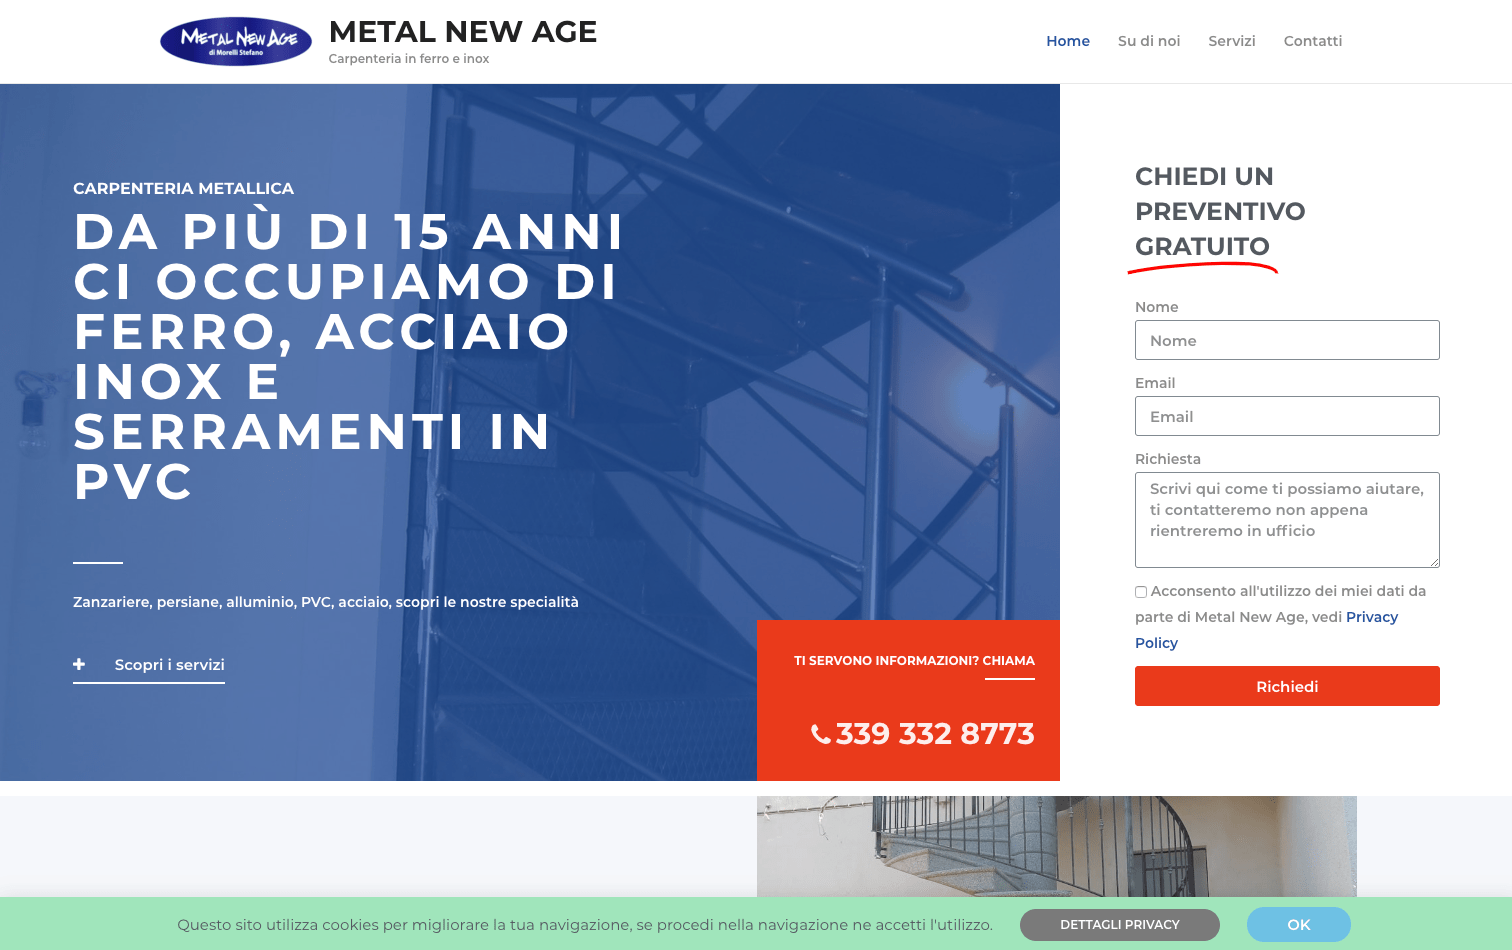 Metal New Age